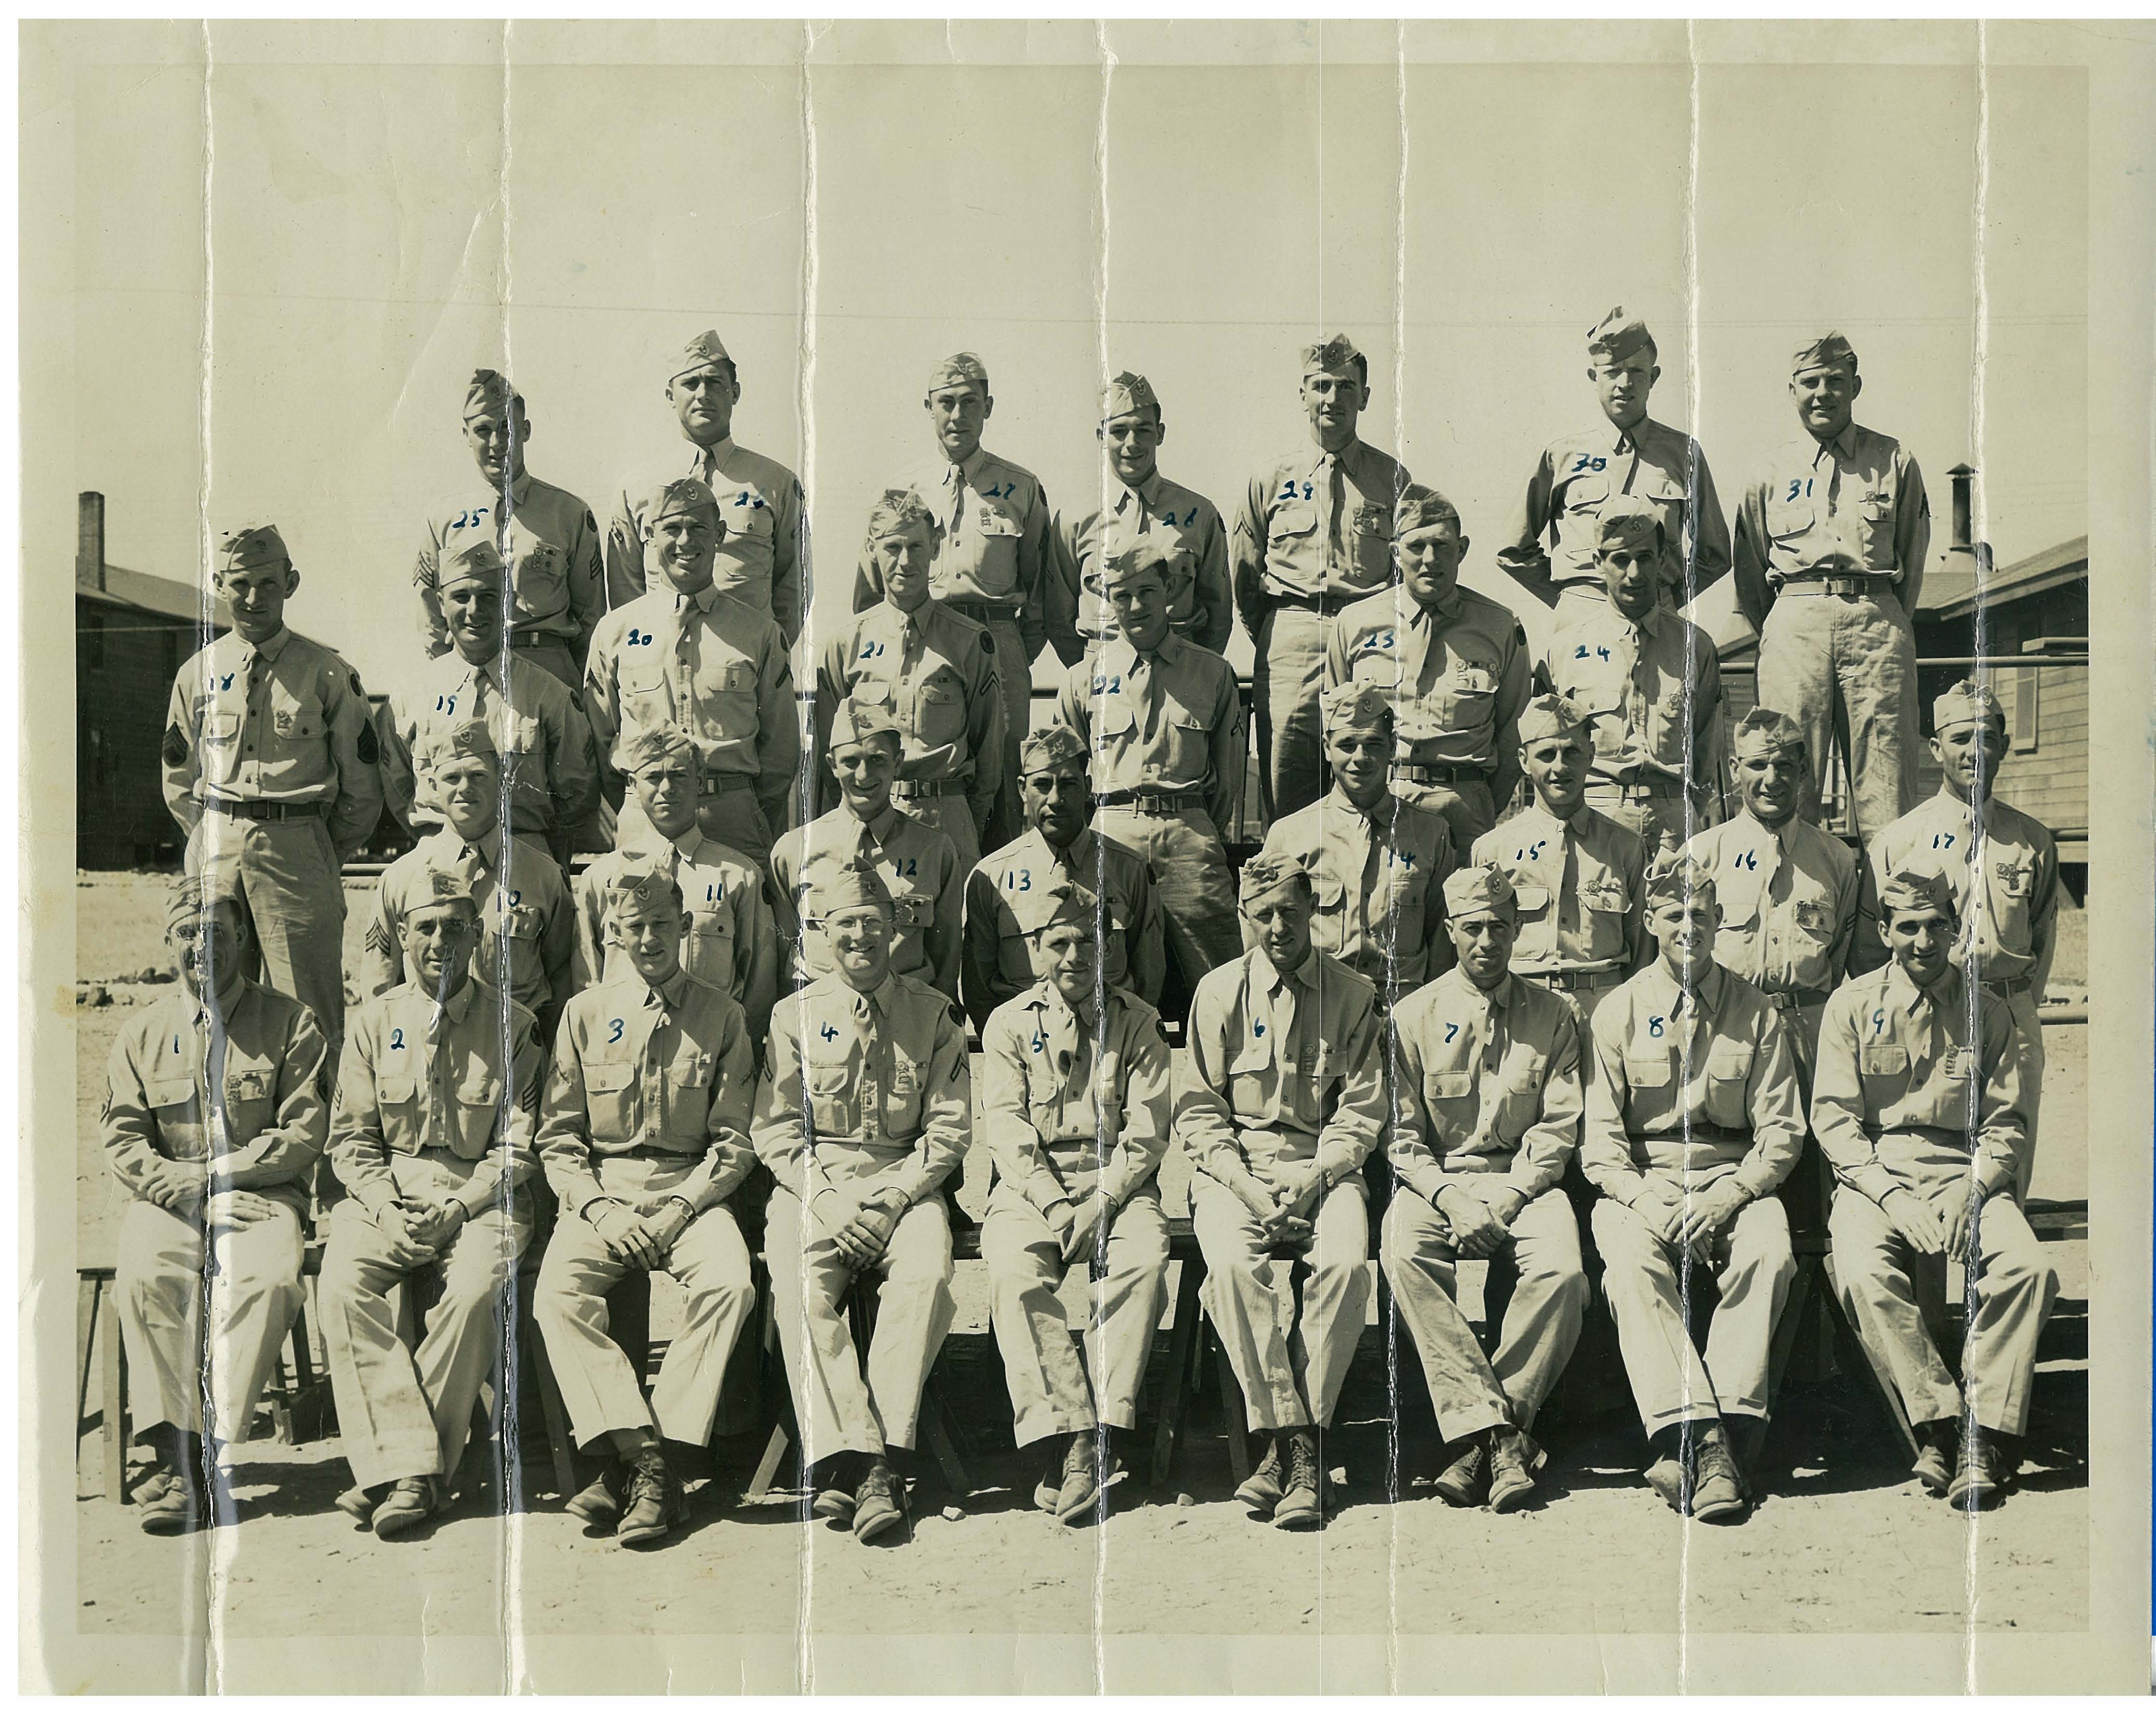 323rd Inf, 2nd Battalion, Co H (Heavy Weapons), 81st